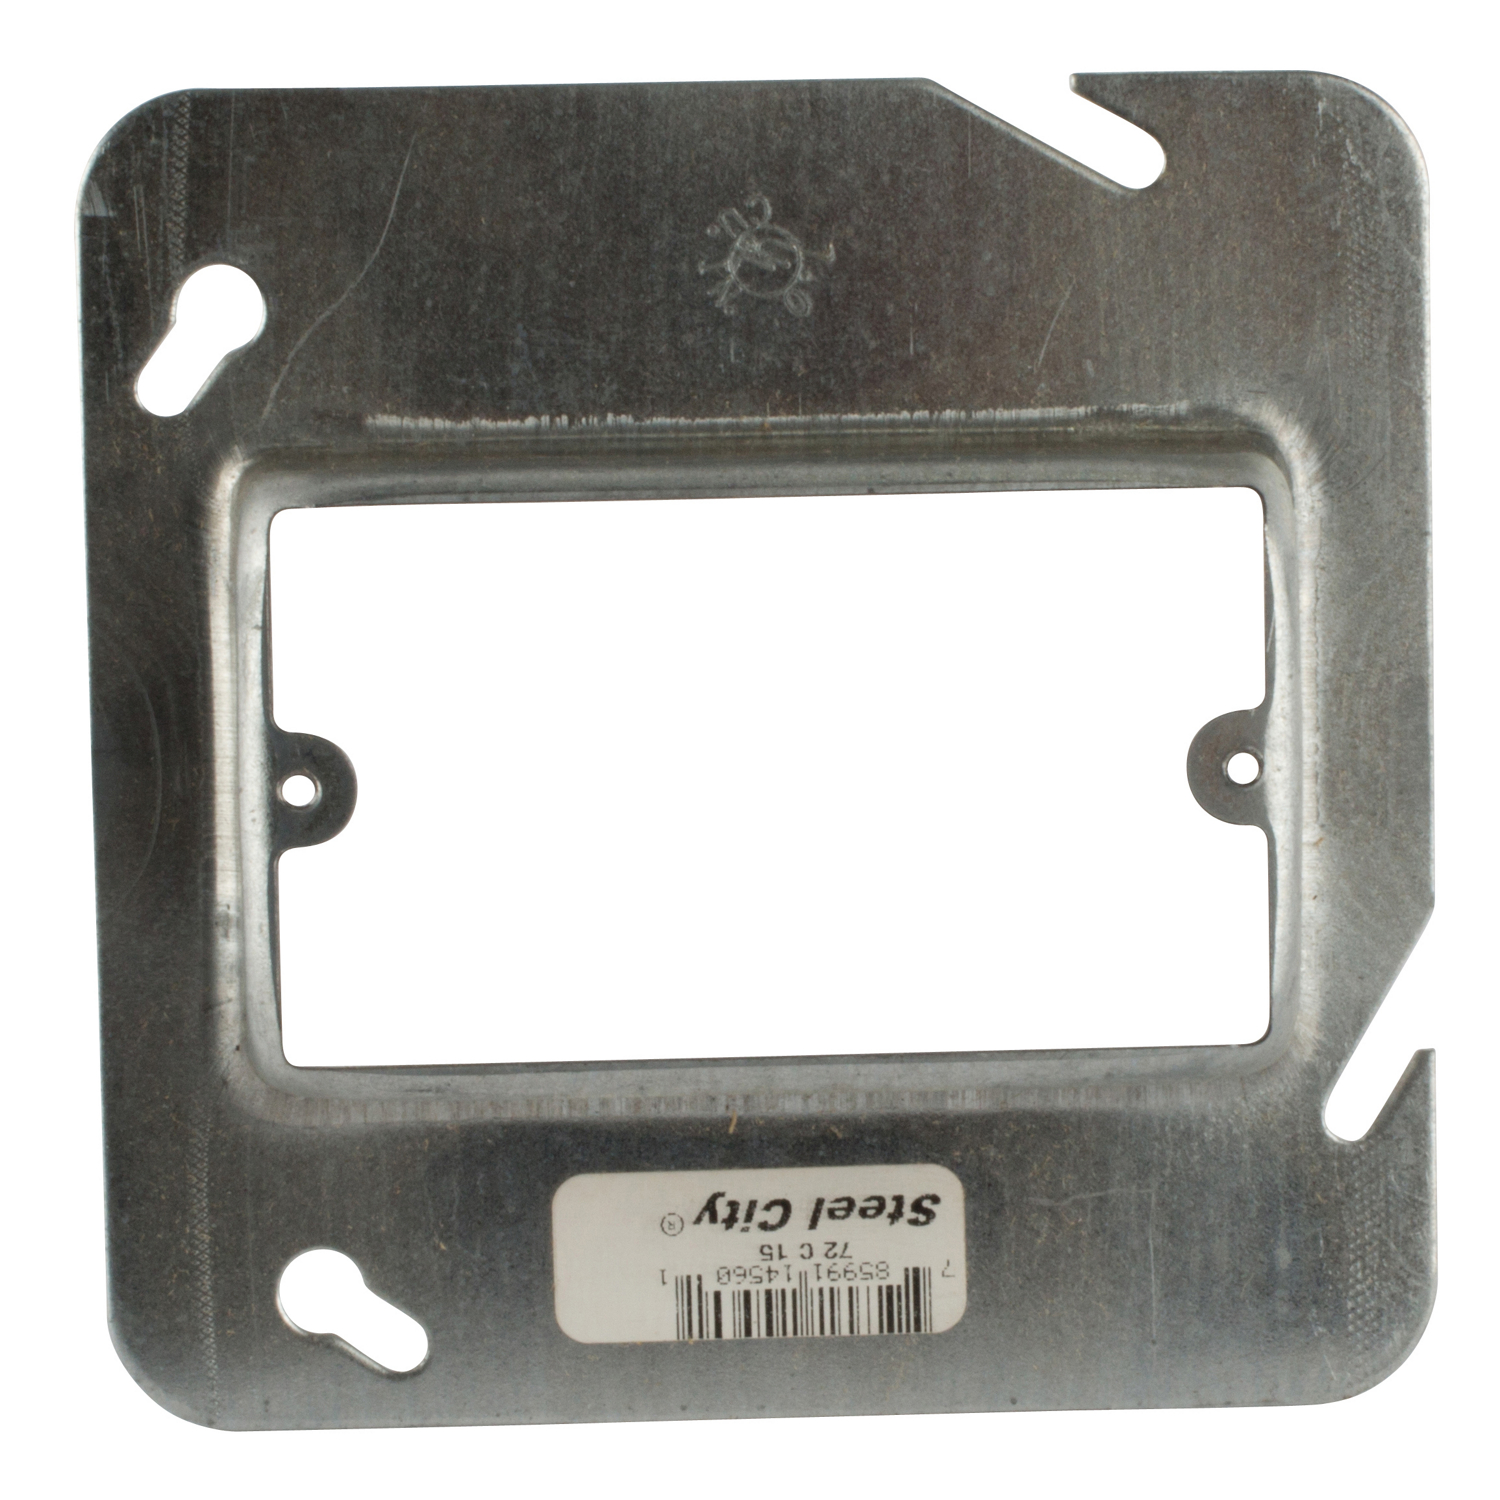 Steel City,72-C-15,Steel City® 72-C-15 Outlet Square Box Cover, 4-11/16 in L x 4-11/16 in W, Steel